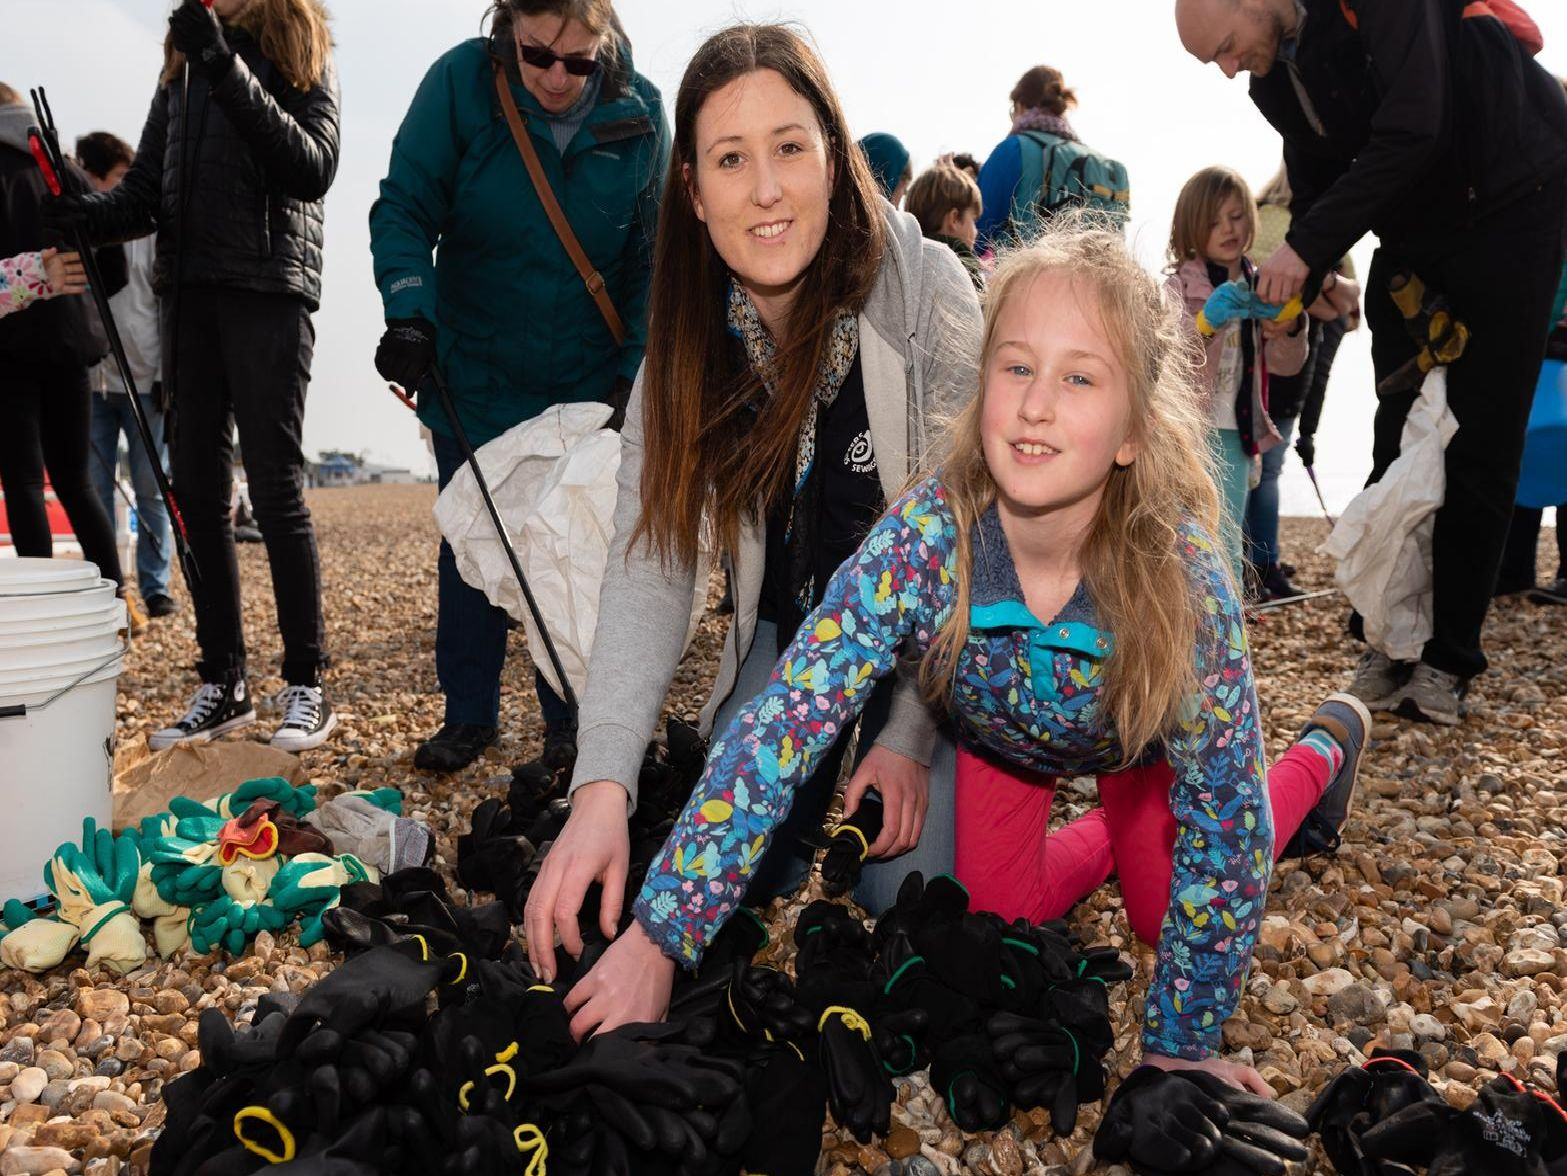 Big Spring Beach Clean - Natasha Parker and her daughter Evelyn Derrick (age 8) from Plastic Free Hayling prepare'ing safety gloves. (060419-001)